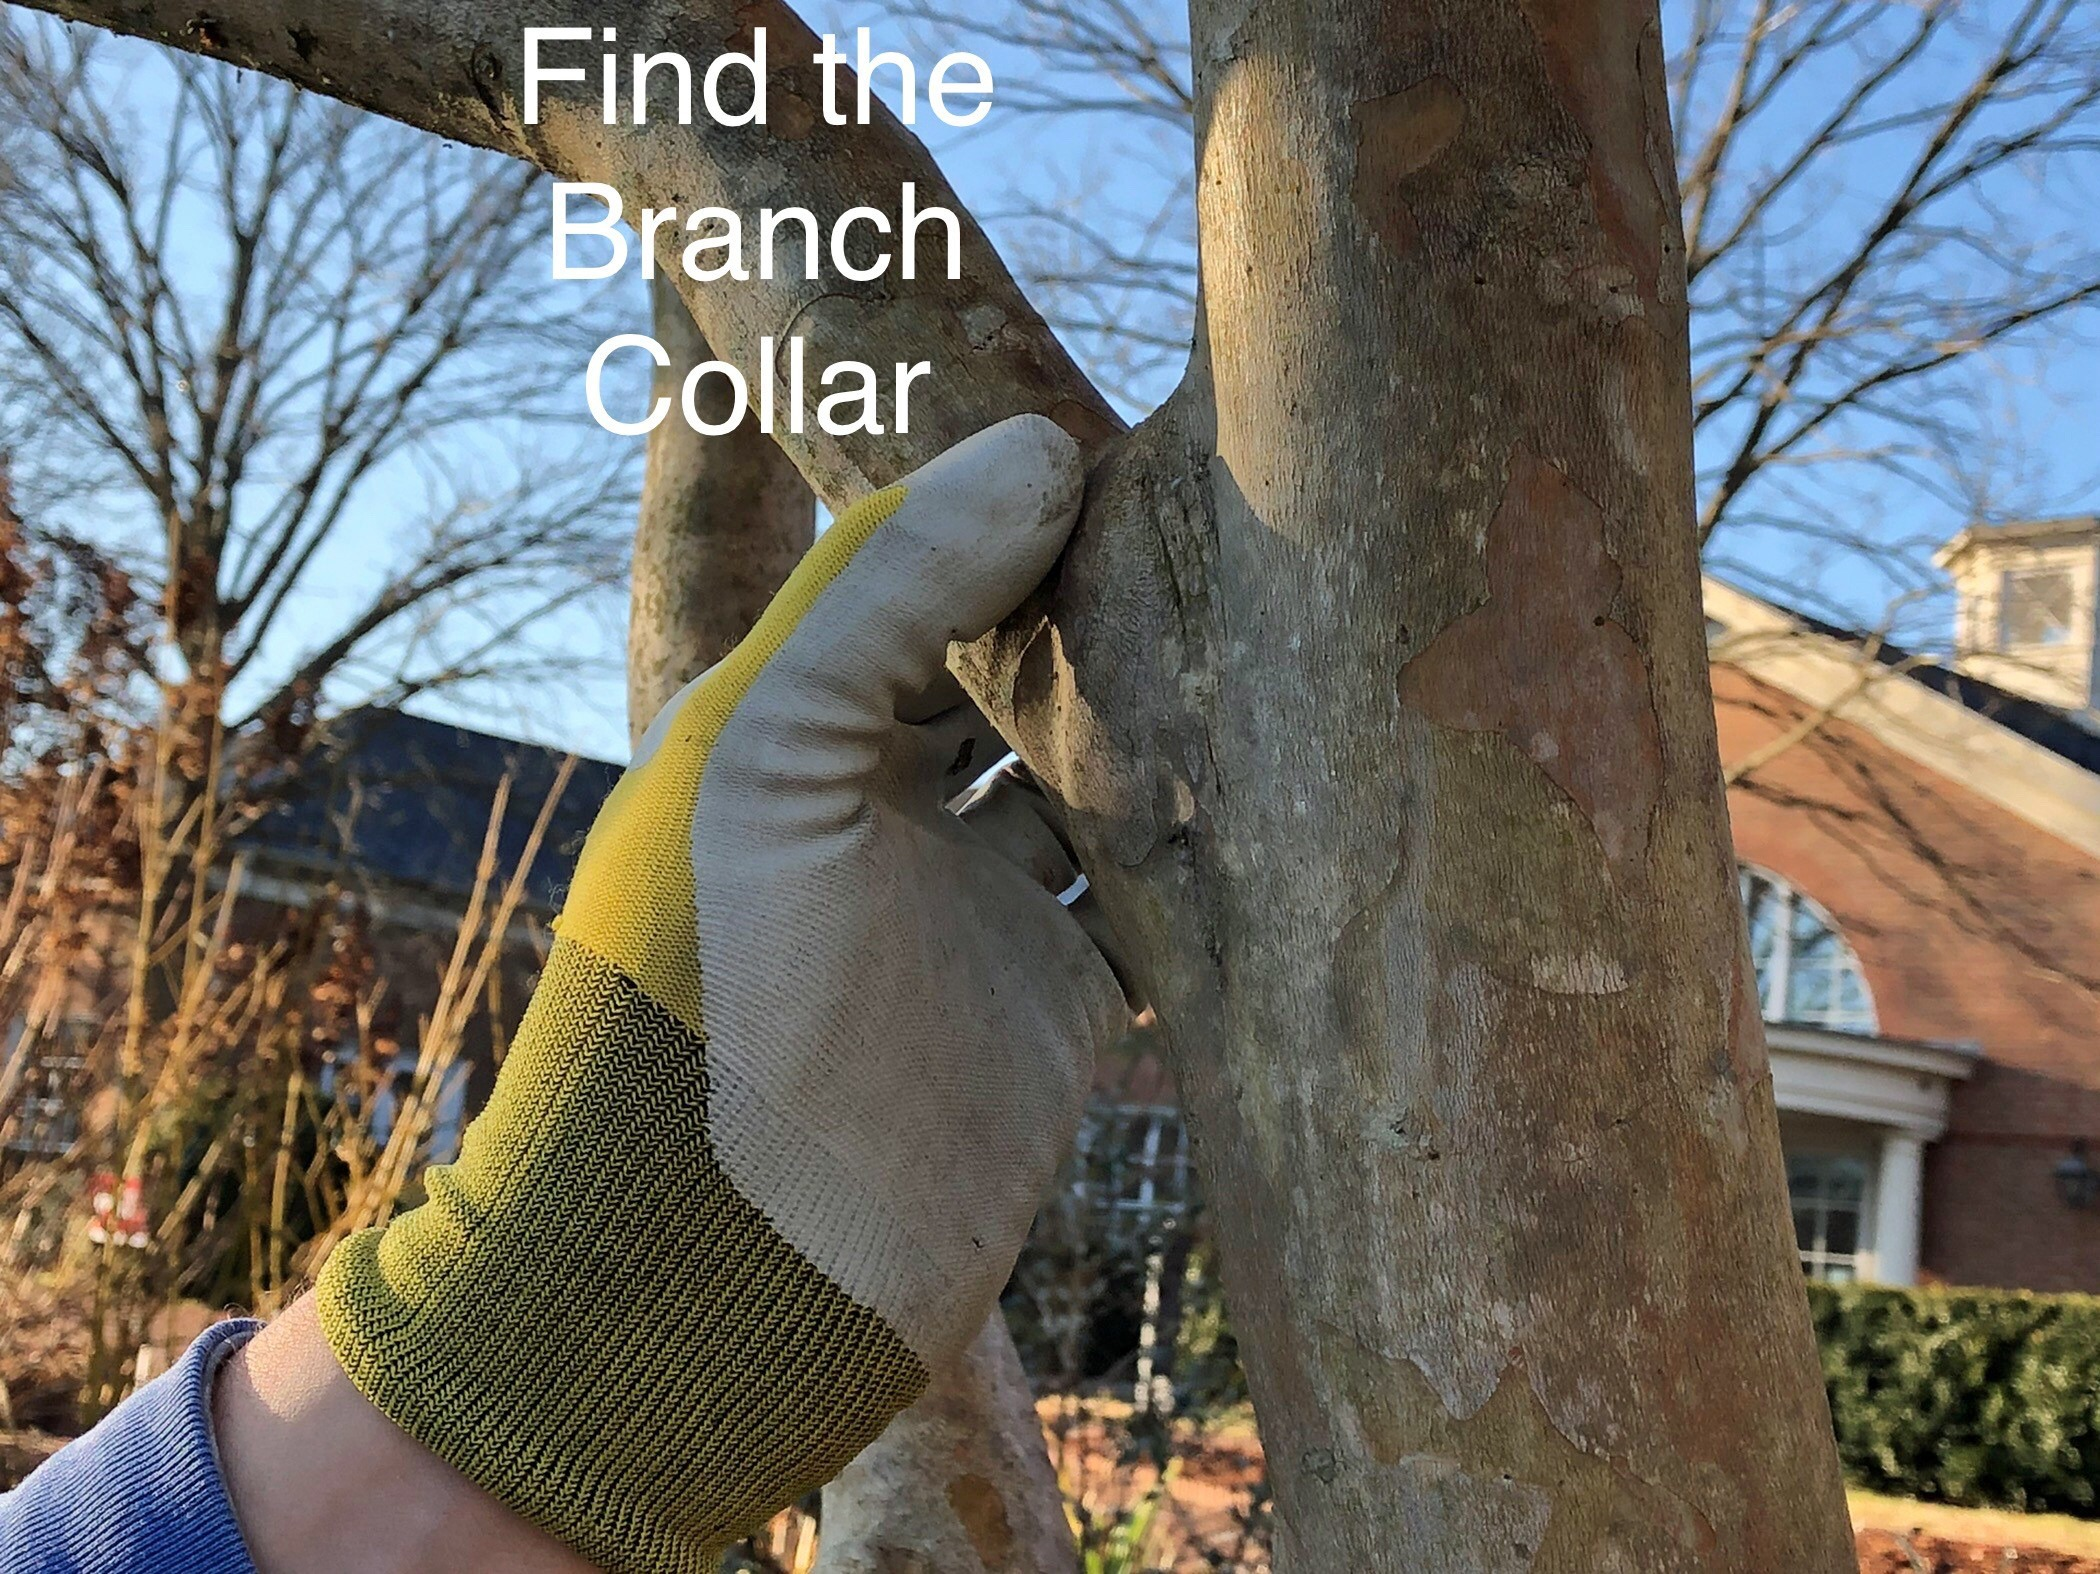 Showing how to find the branch collar